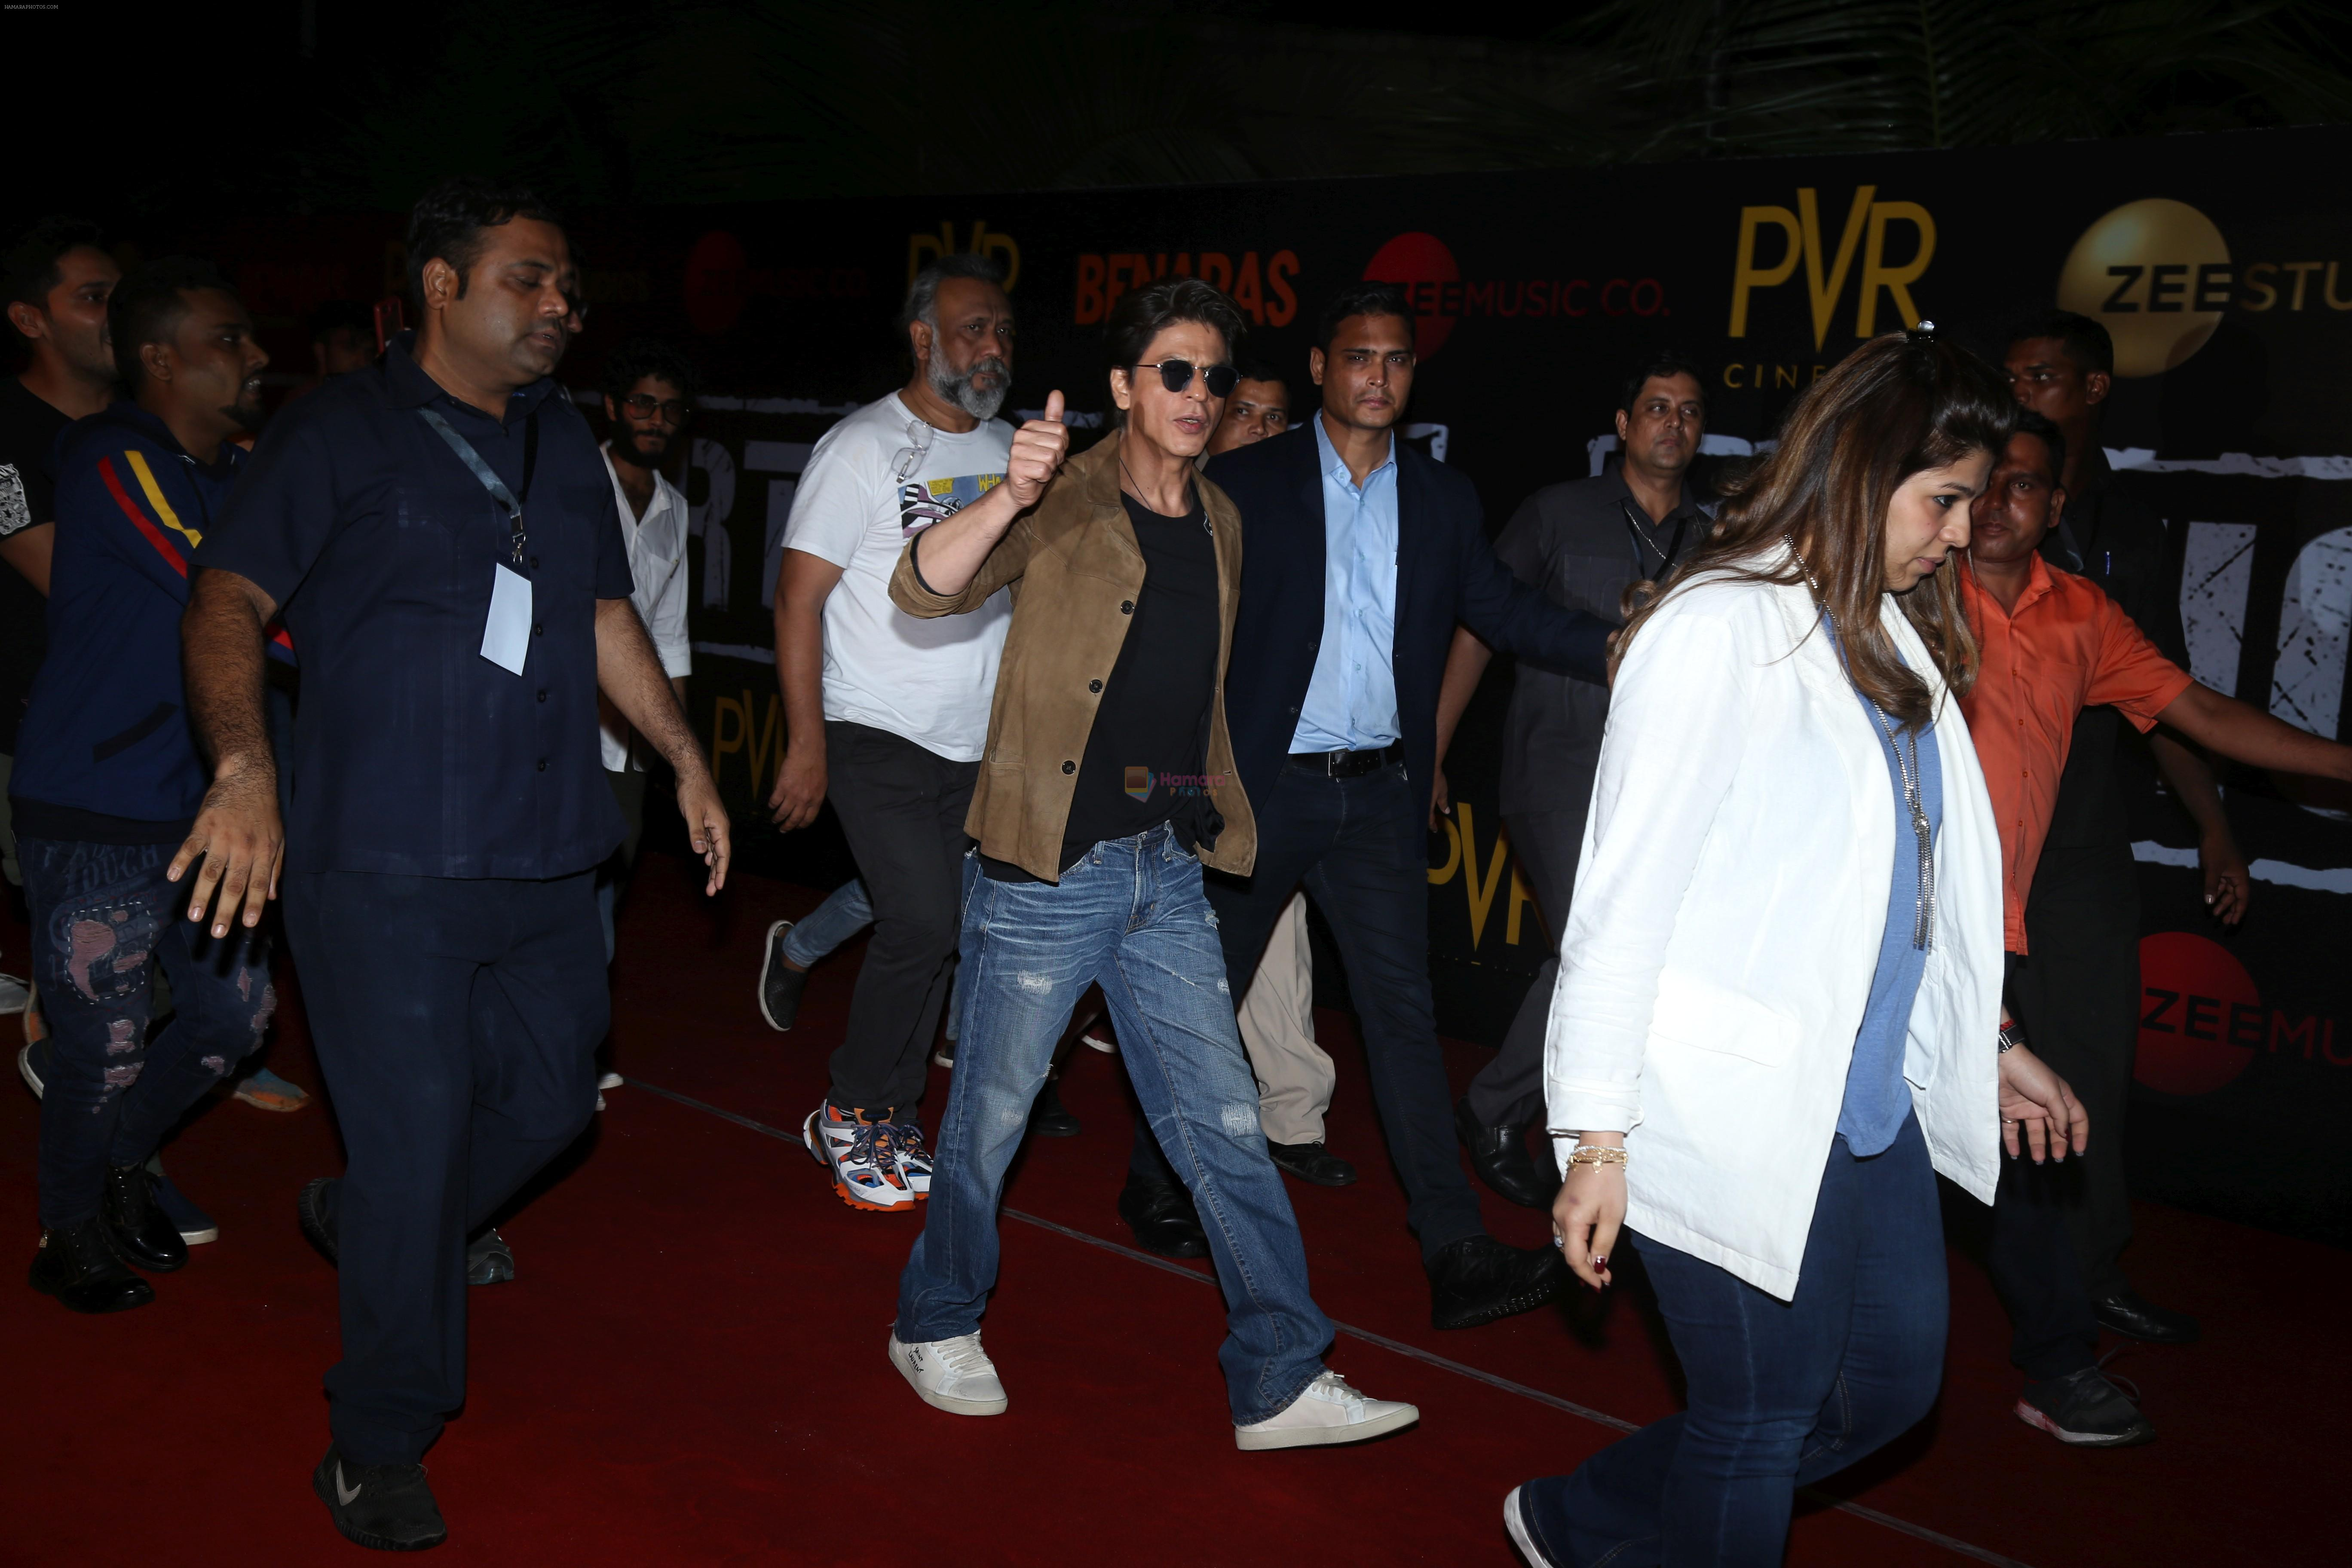 Shah Rukh KHan at the Screening of film Article 15 in pvr icon, andheri on 26th June 2019